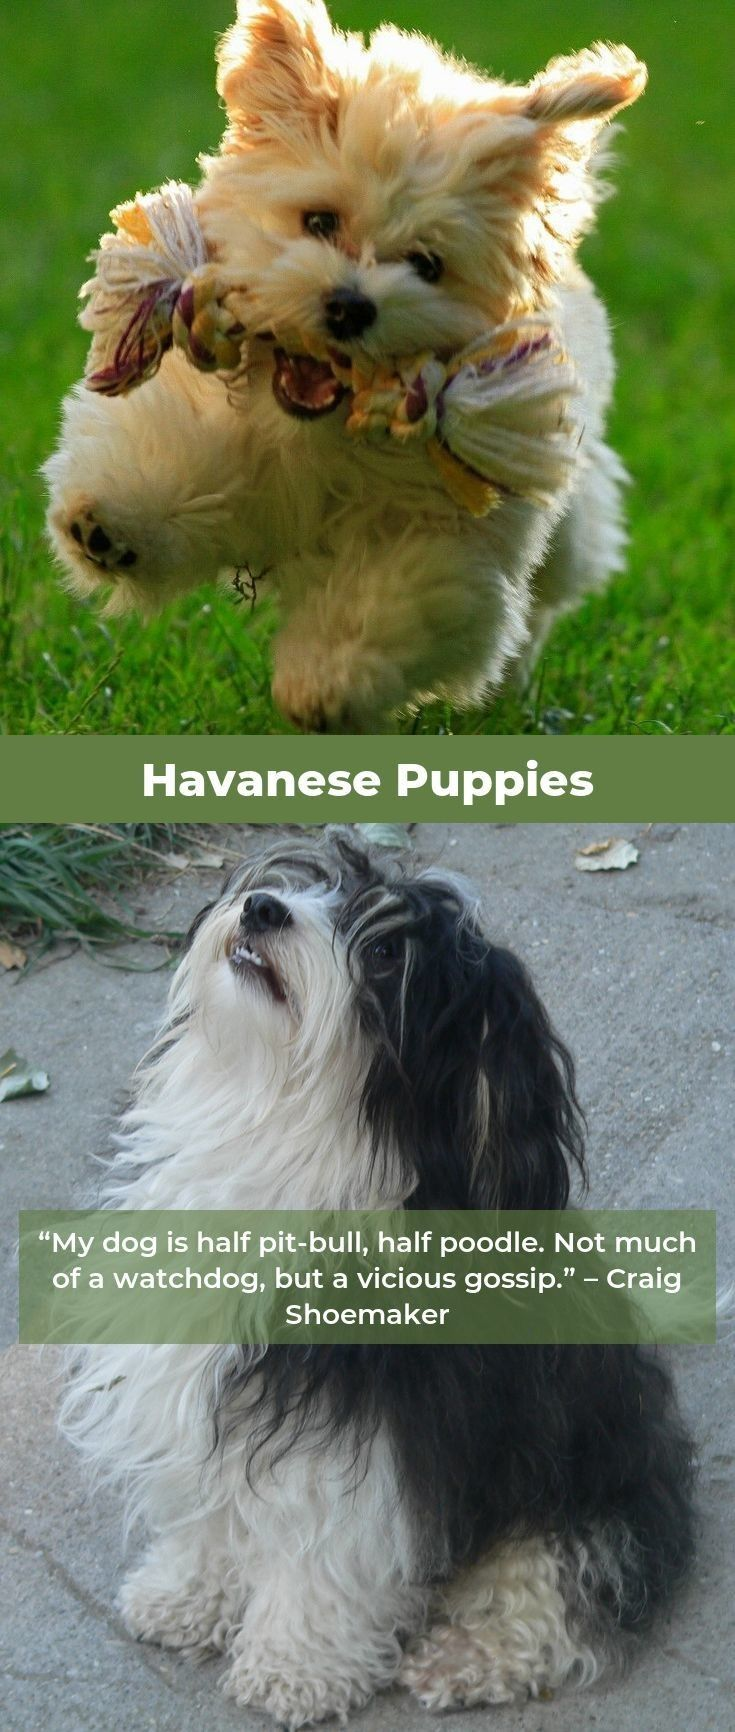 Havanese Dog Havaneseofny Havaneseworld Havanese Dogs Puppy Adoption